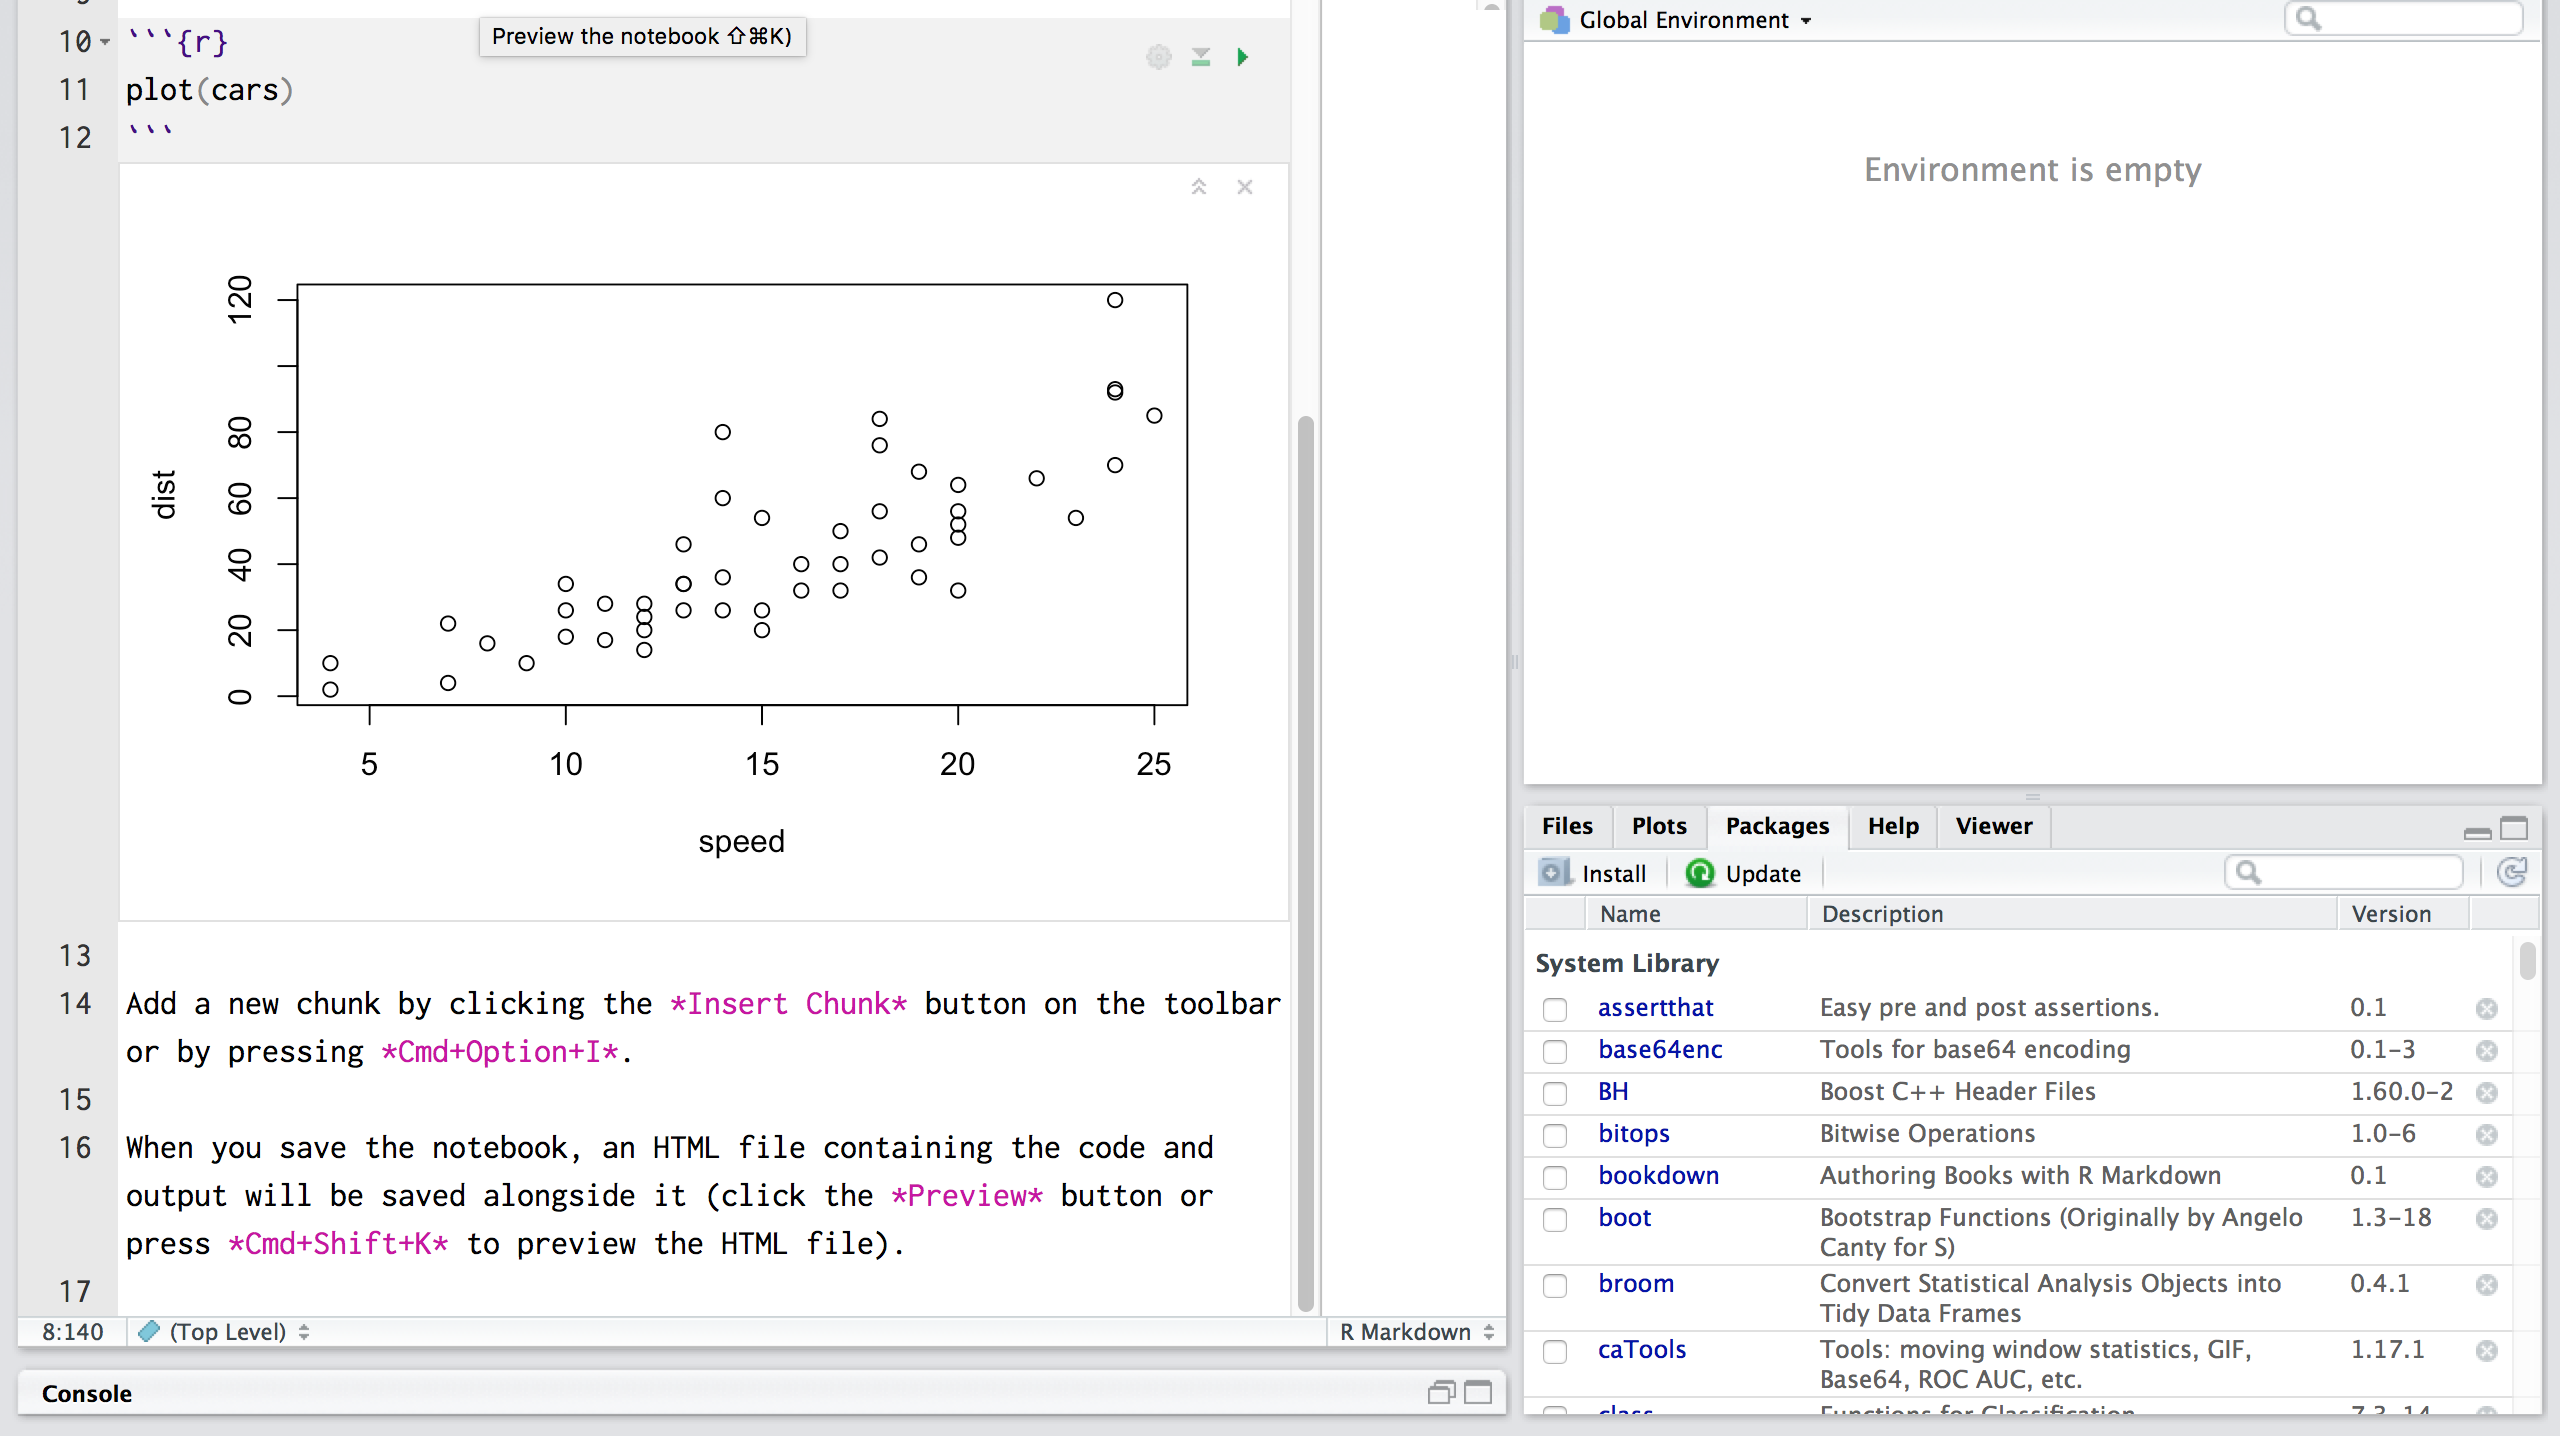 Getting Started With R in RStudio Notebooks - Storybench